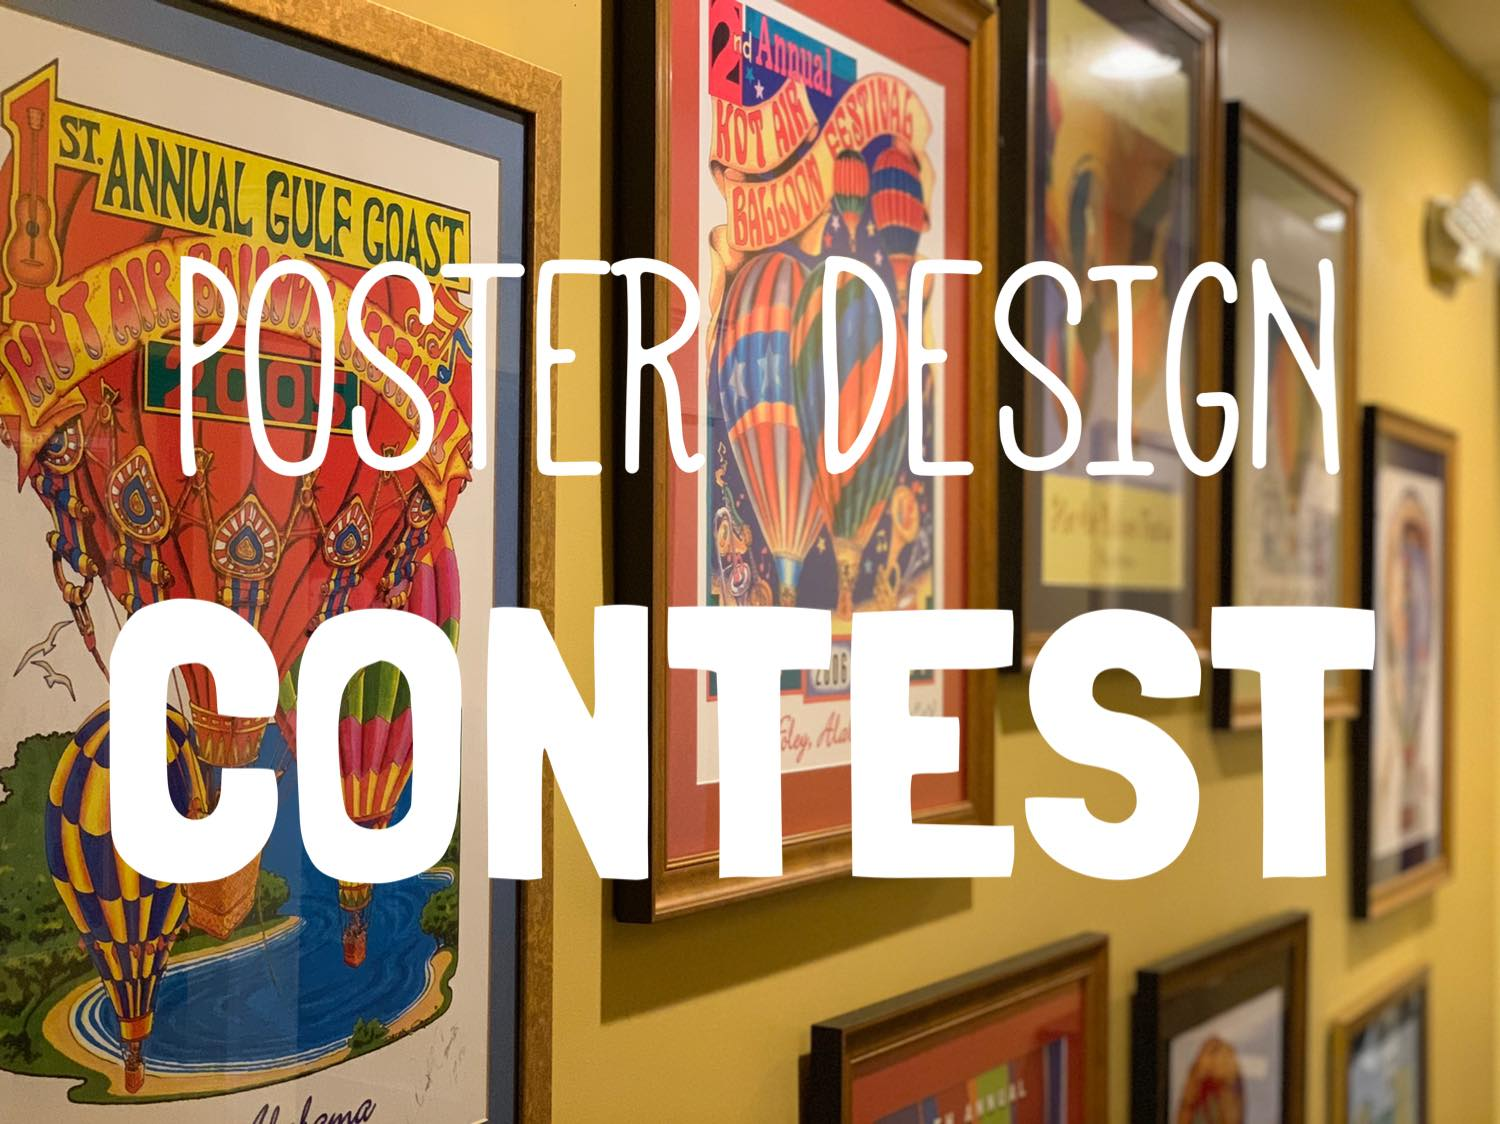 2021 Poster Design Contest for the Gulf Coast Hot Air Balloon Festival